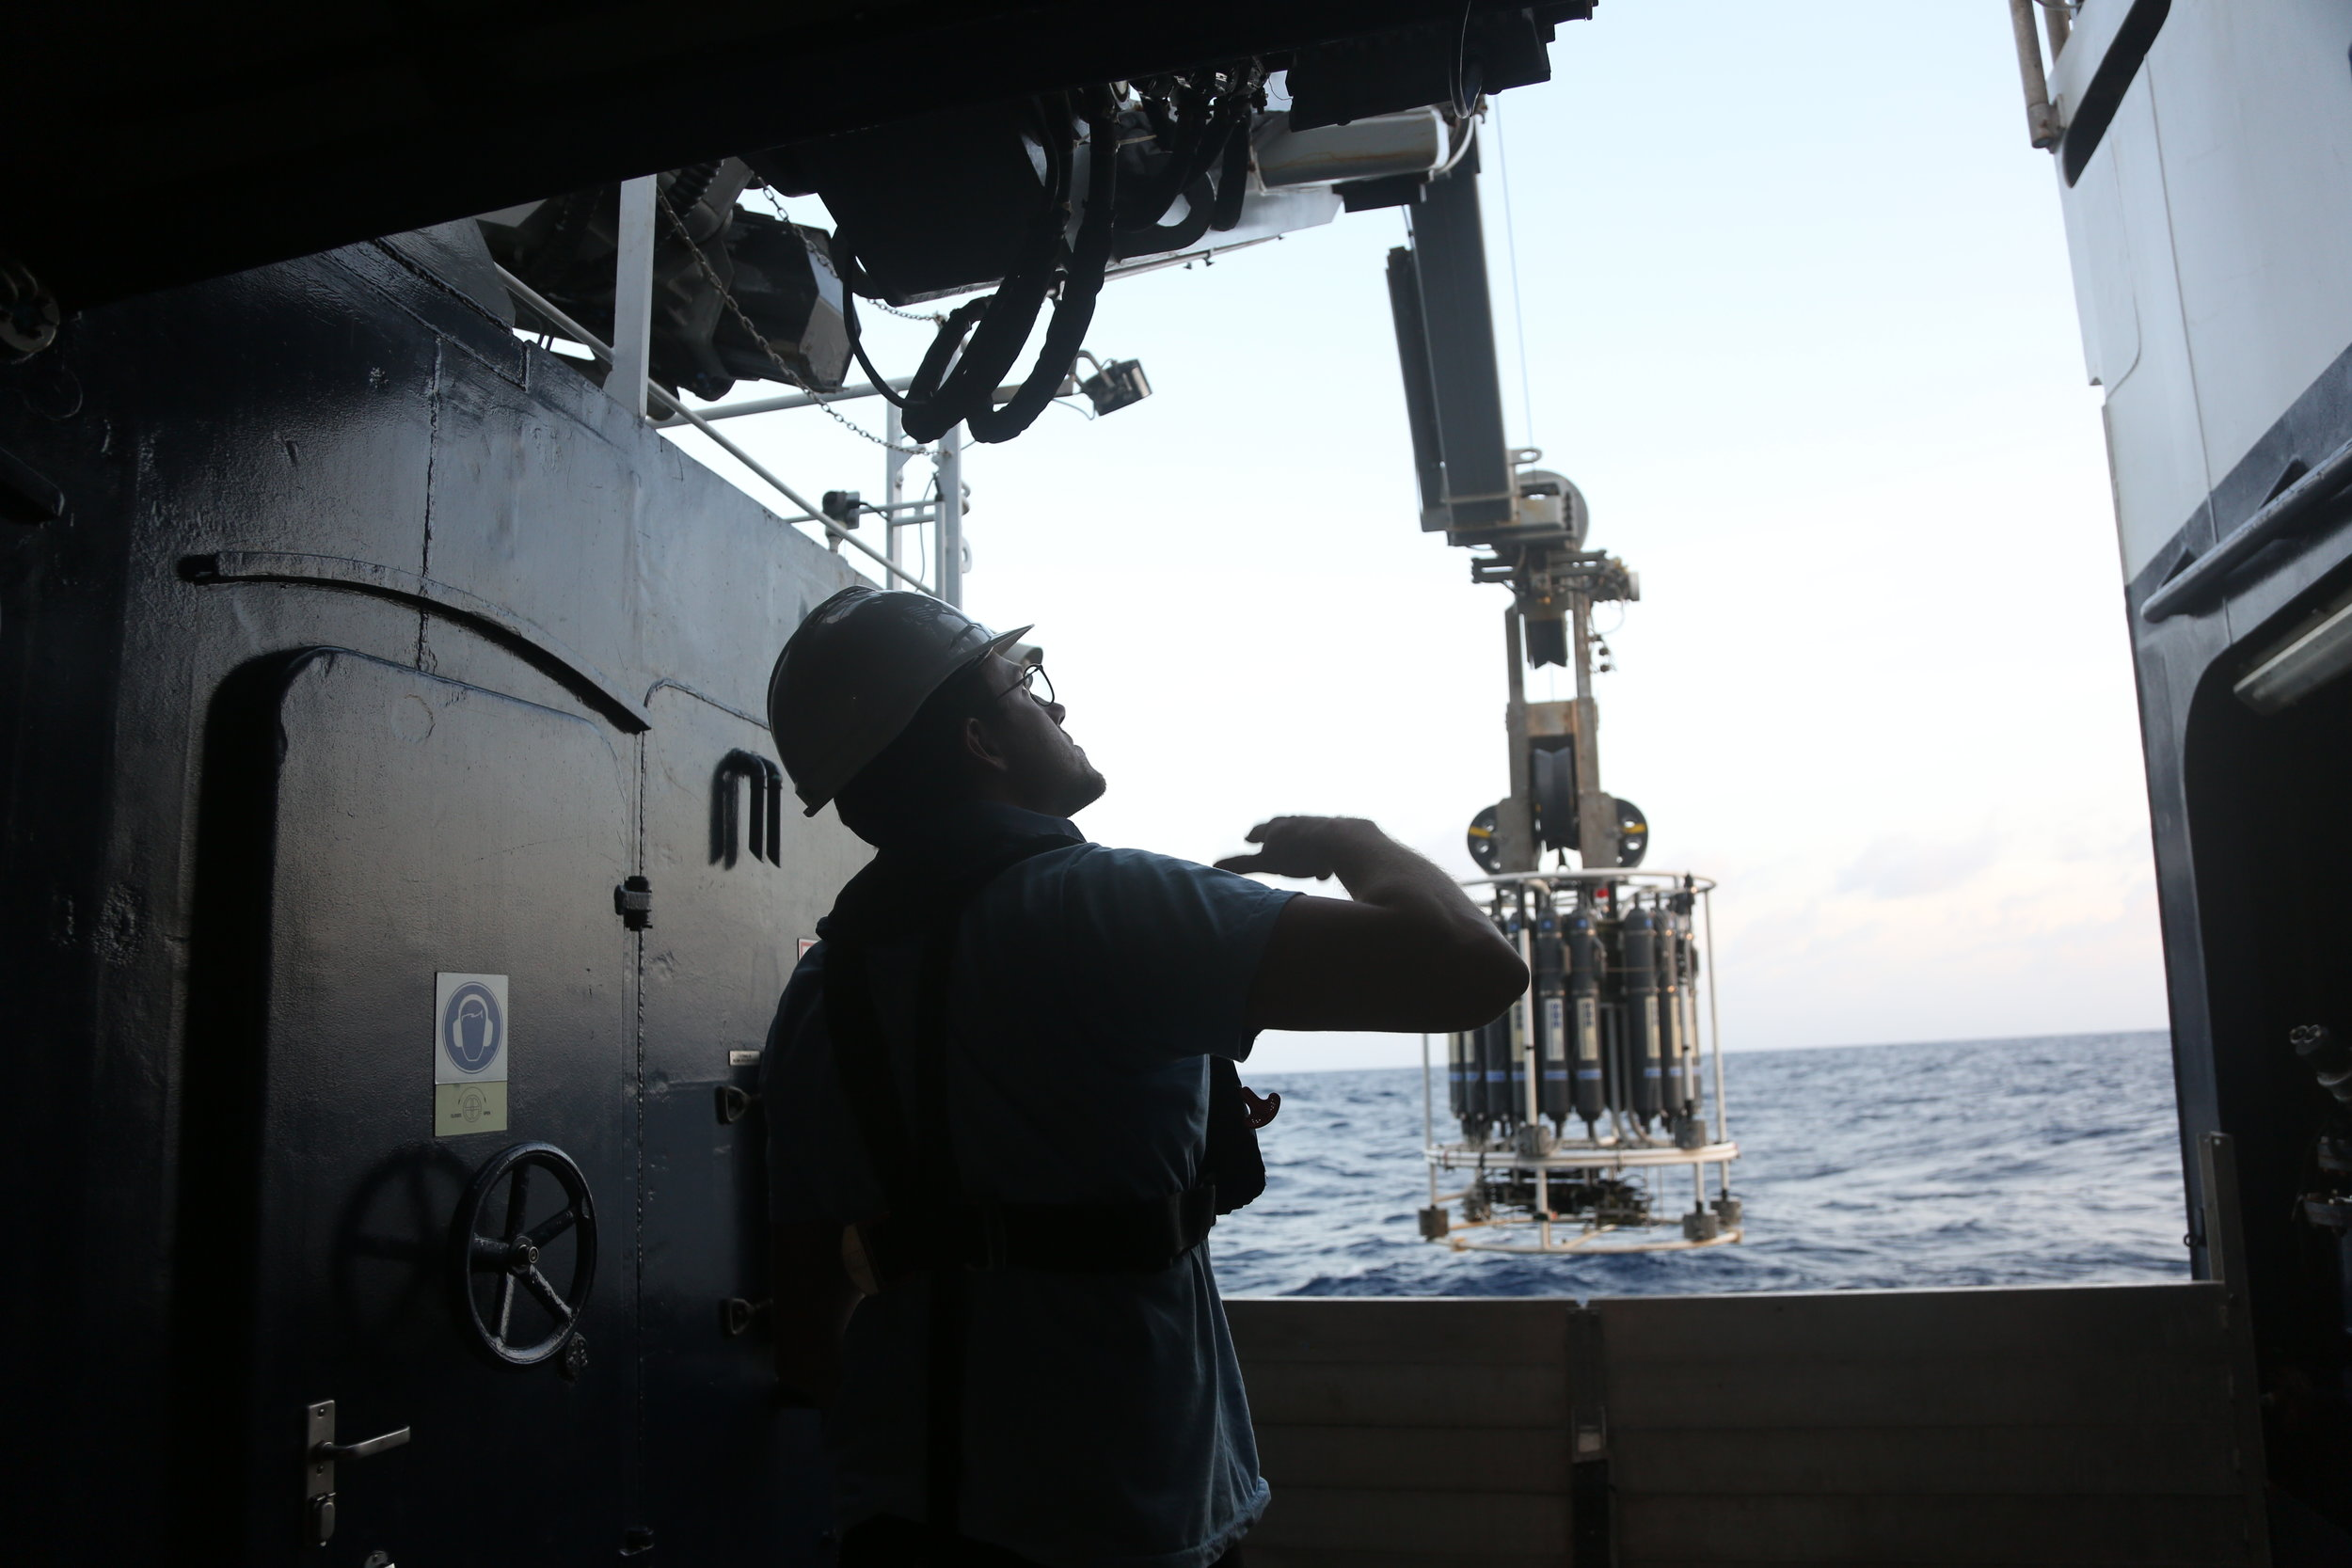 All clear.  Marine technician John Fulmer motions to lower the CTD.